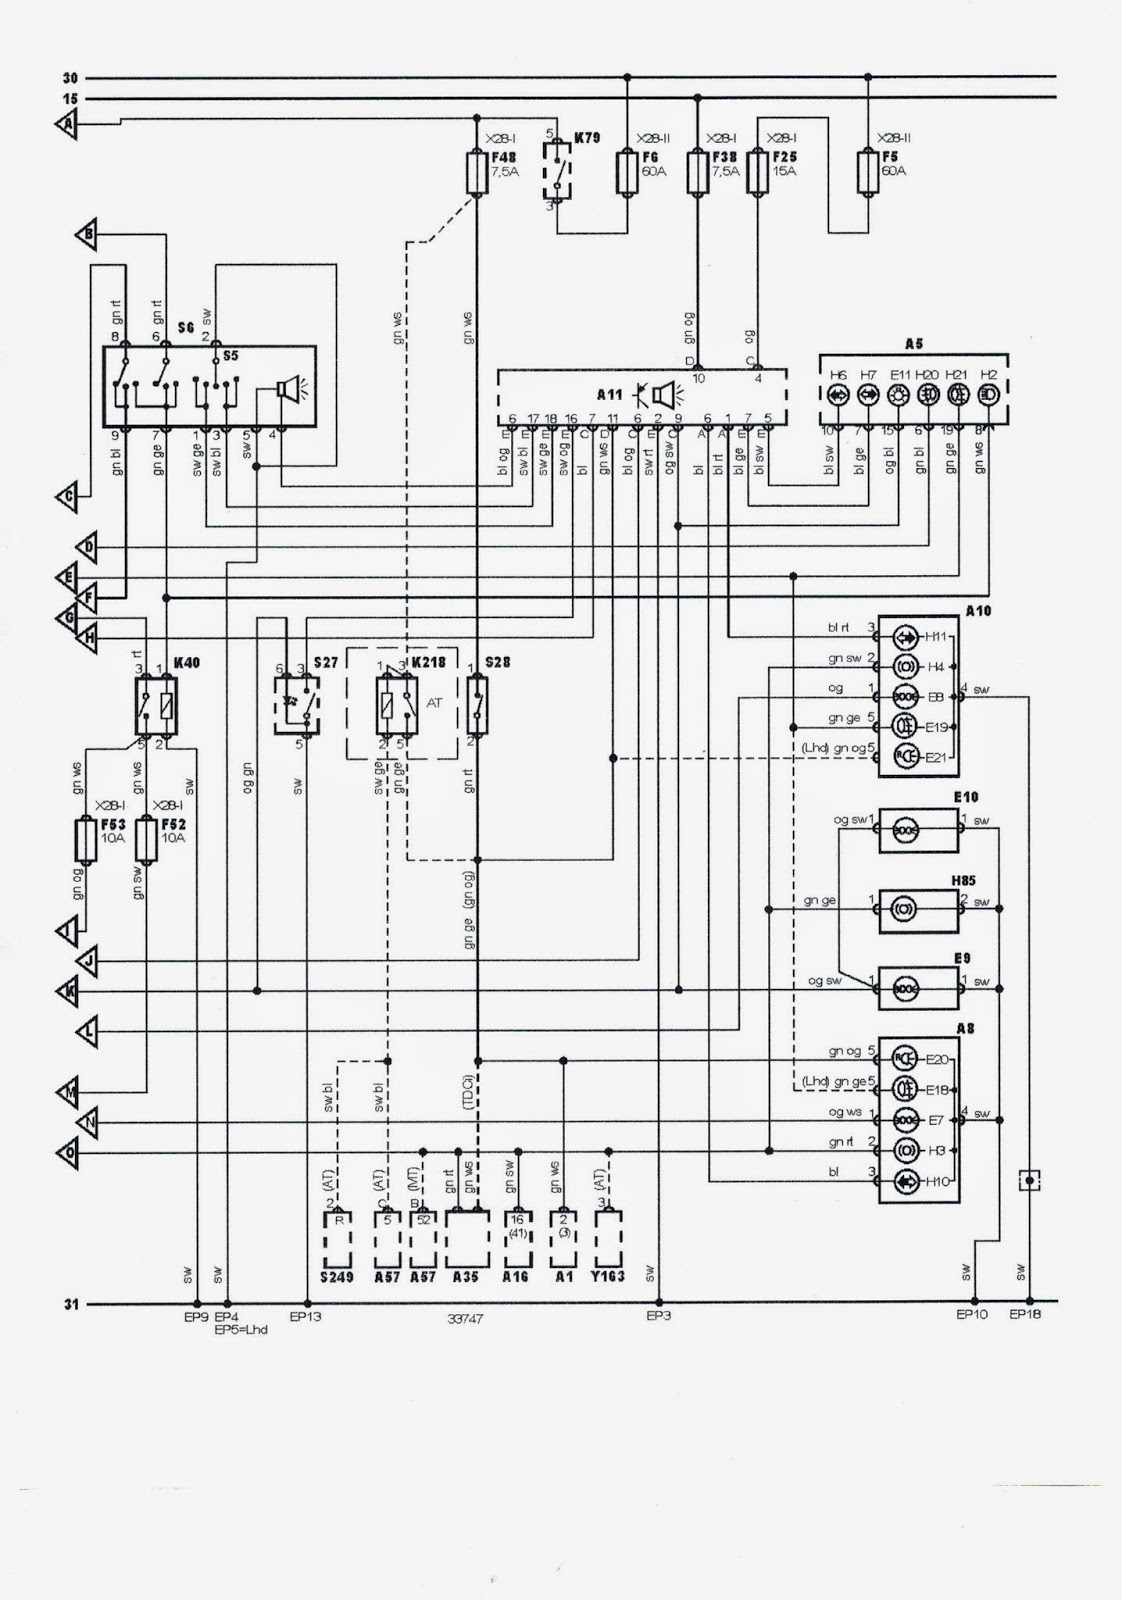 2002 Explorer Ac Vacuum Diagram Wiring Will Be A Thing Additionally Ford Fiesta On Pump Manuales De Reparacion Esquema Electrico Hvac Adapter